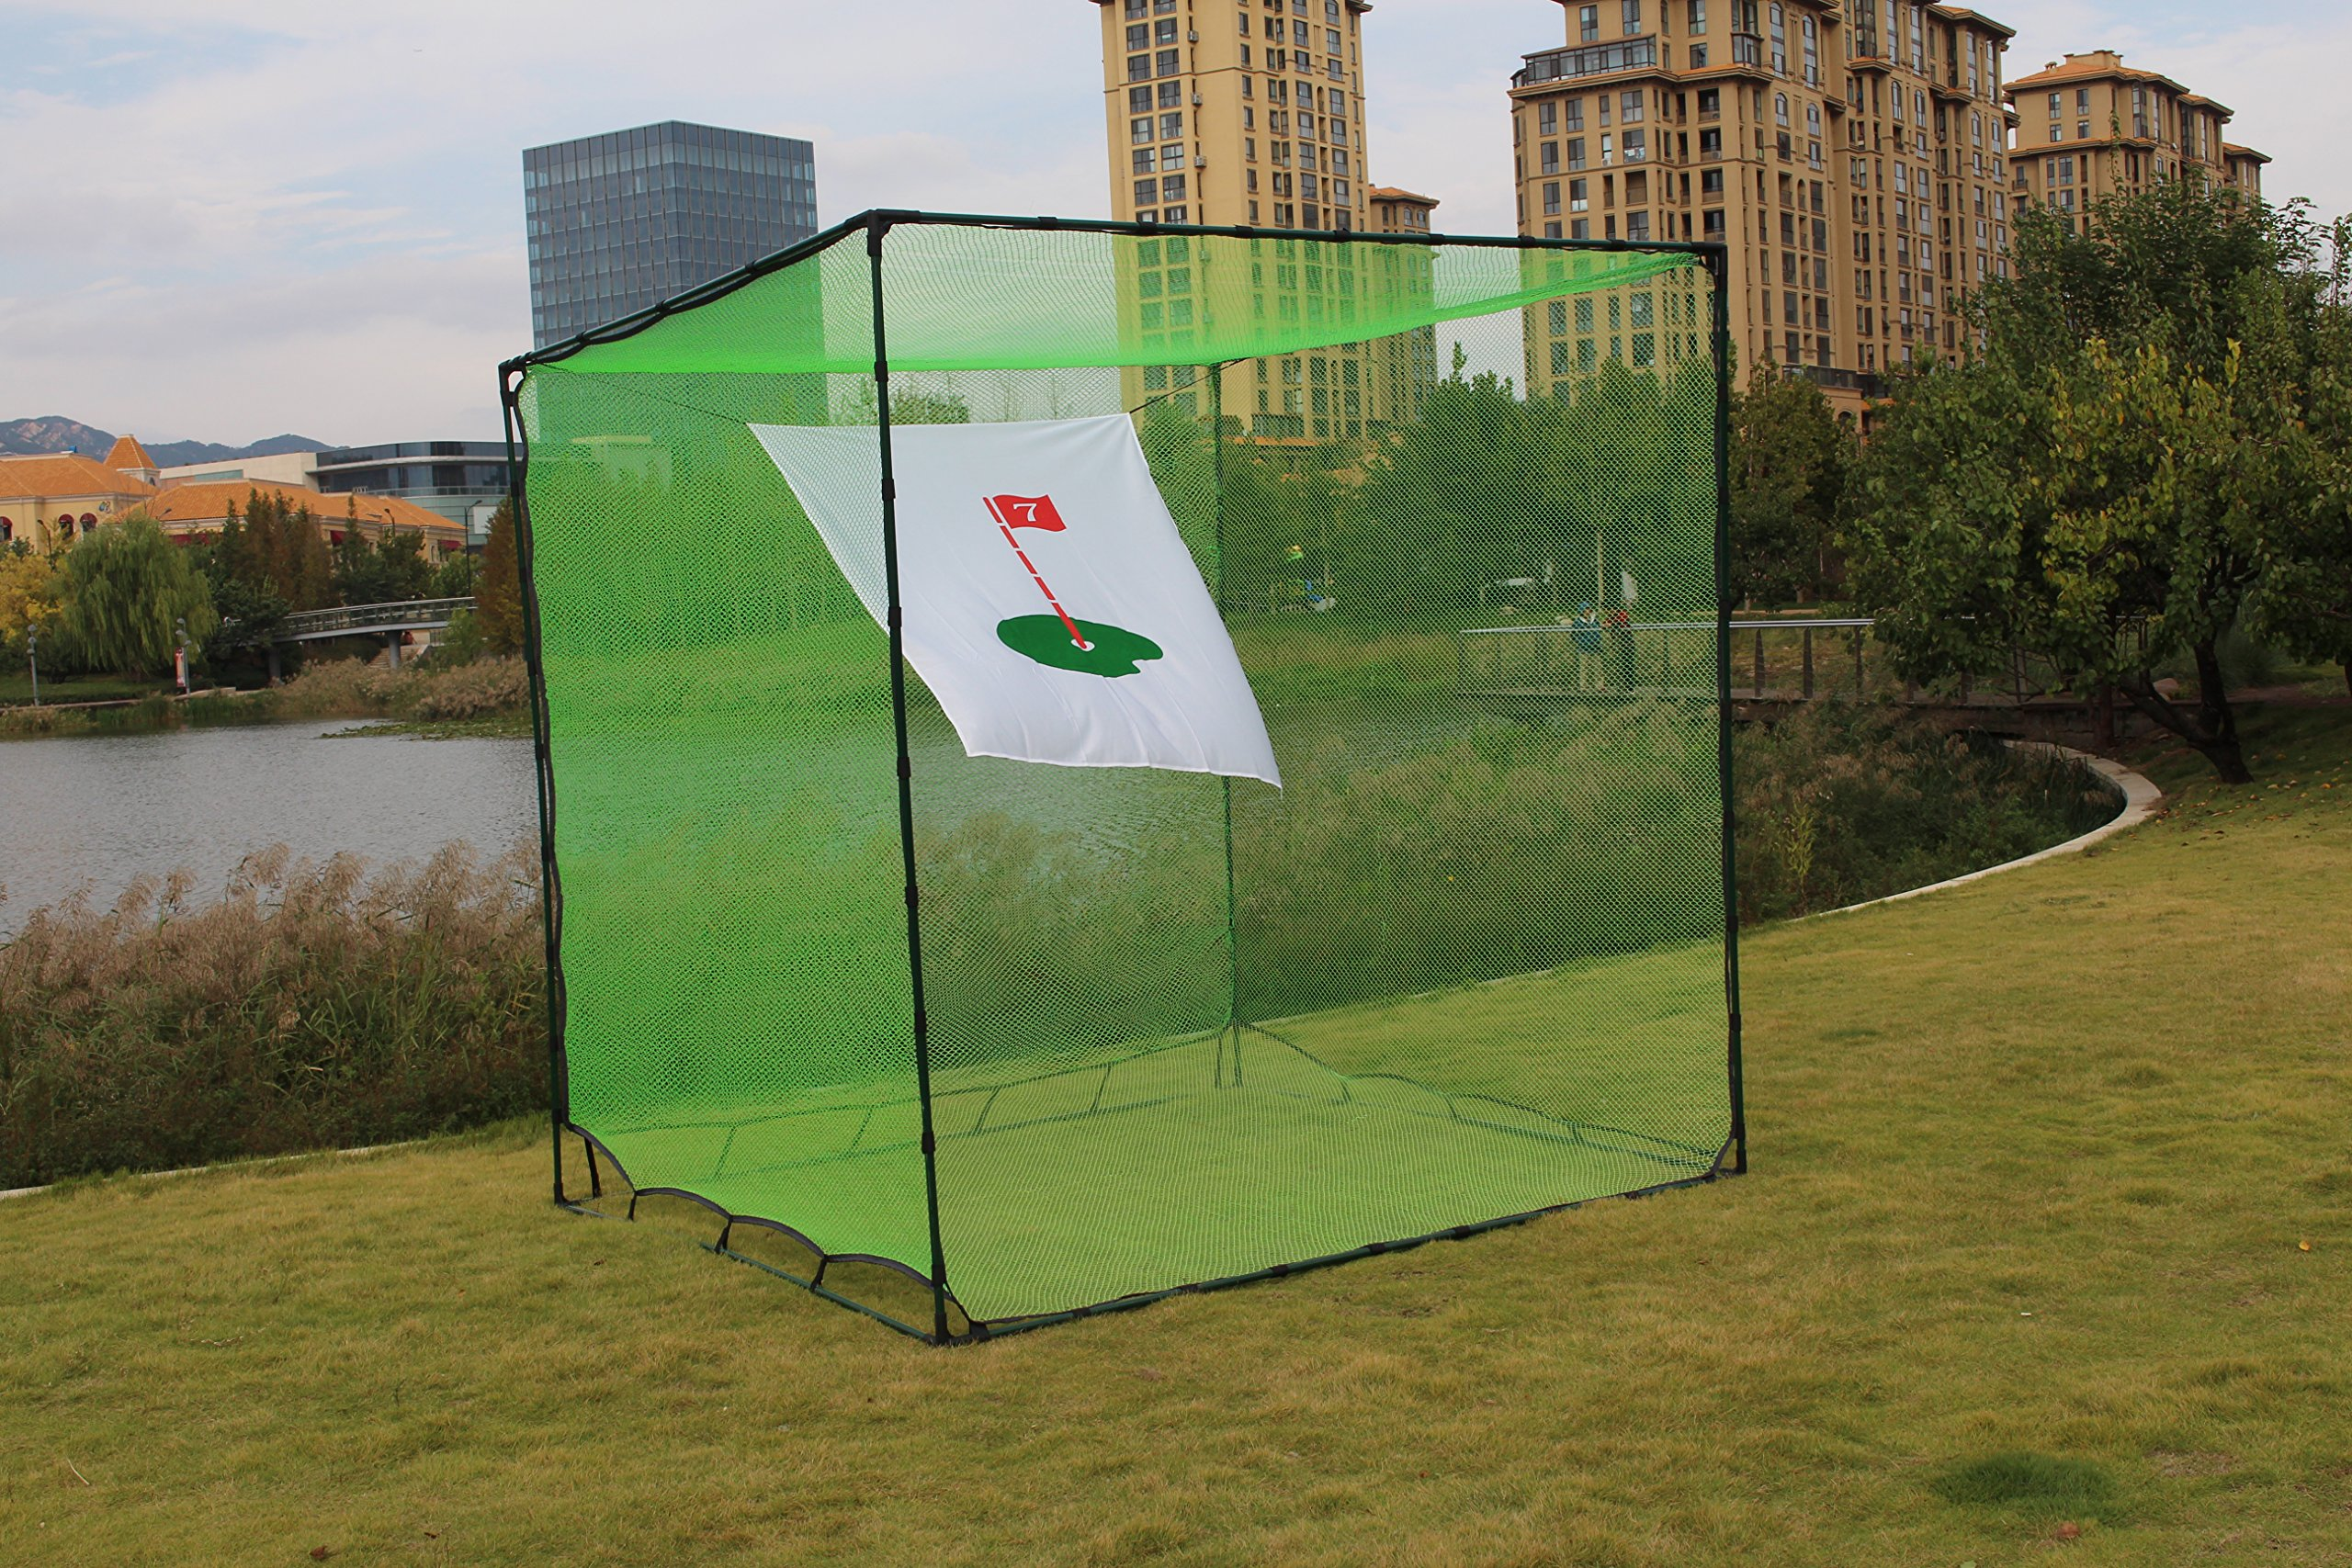 Galileo 10'x 10' x10' nylon golf cage  practice driving indoor and outdoor golf net  high impact double back stop and target golf training aids/automatic ball return